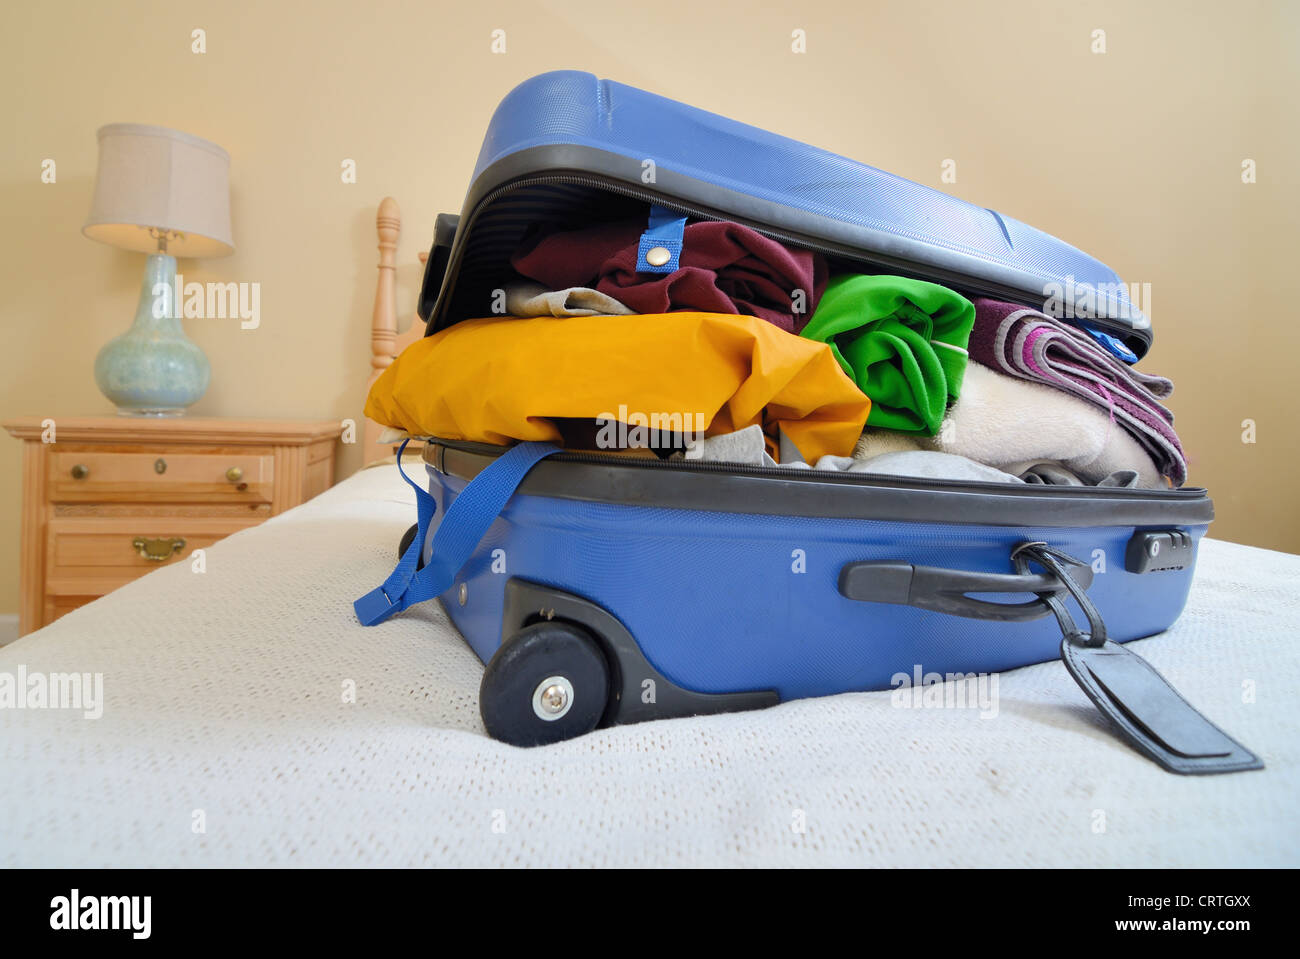 overflowing luggage on a bed - Stock Image